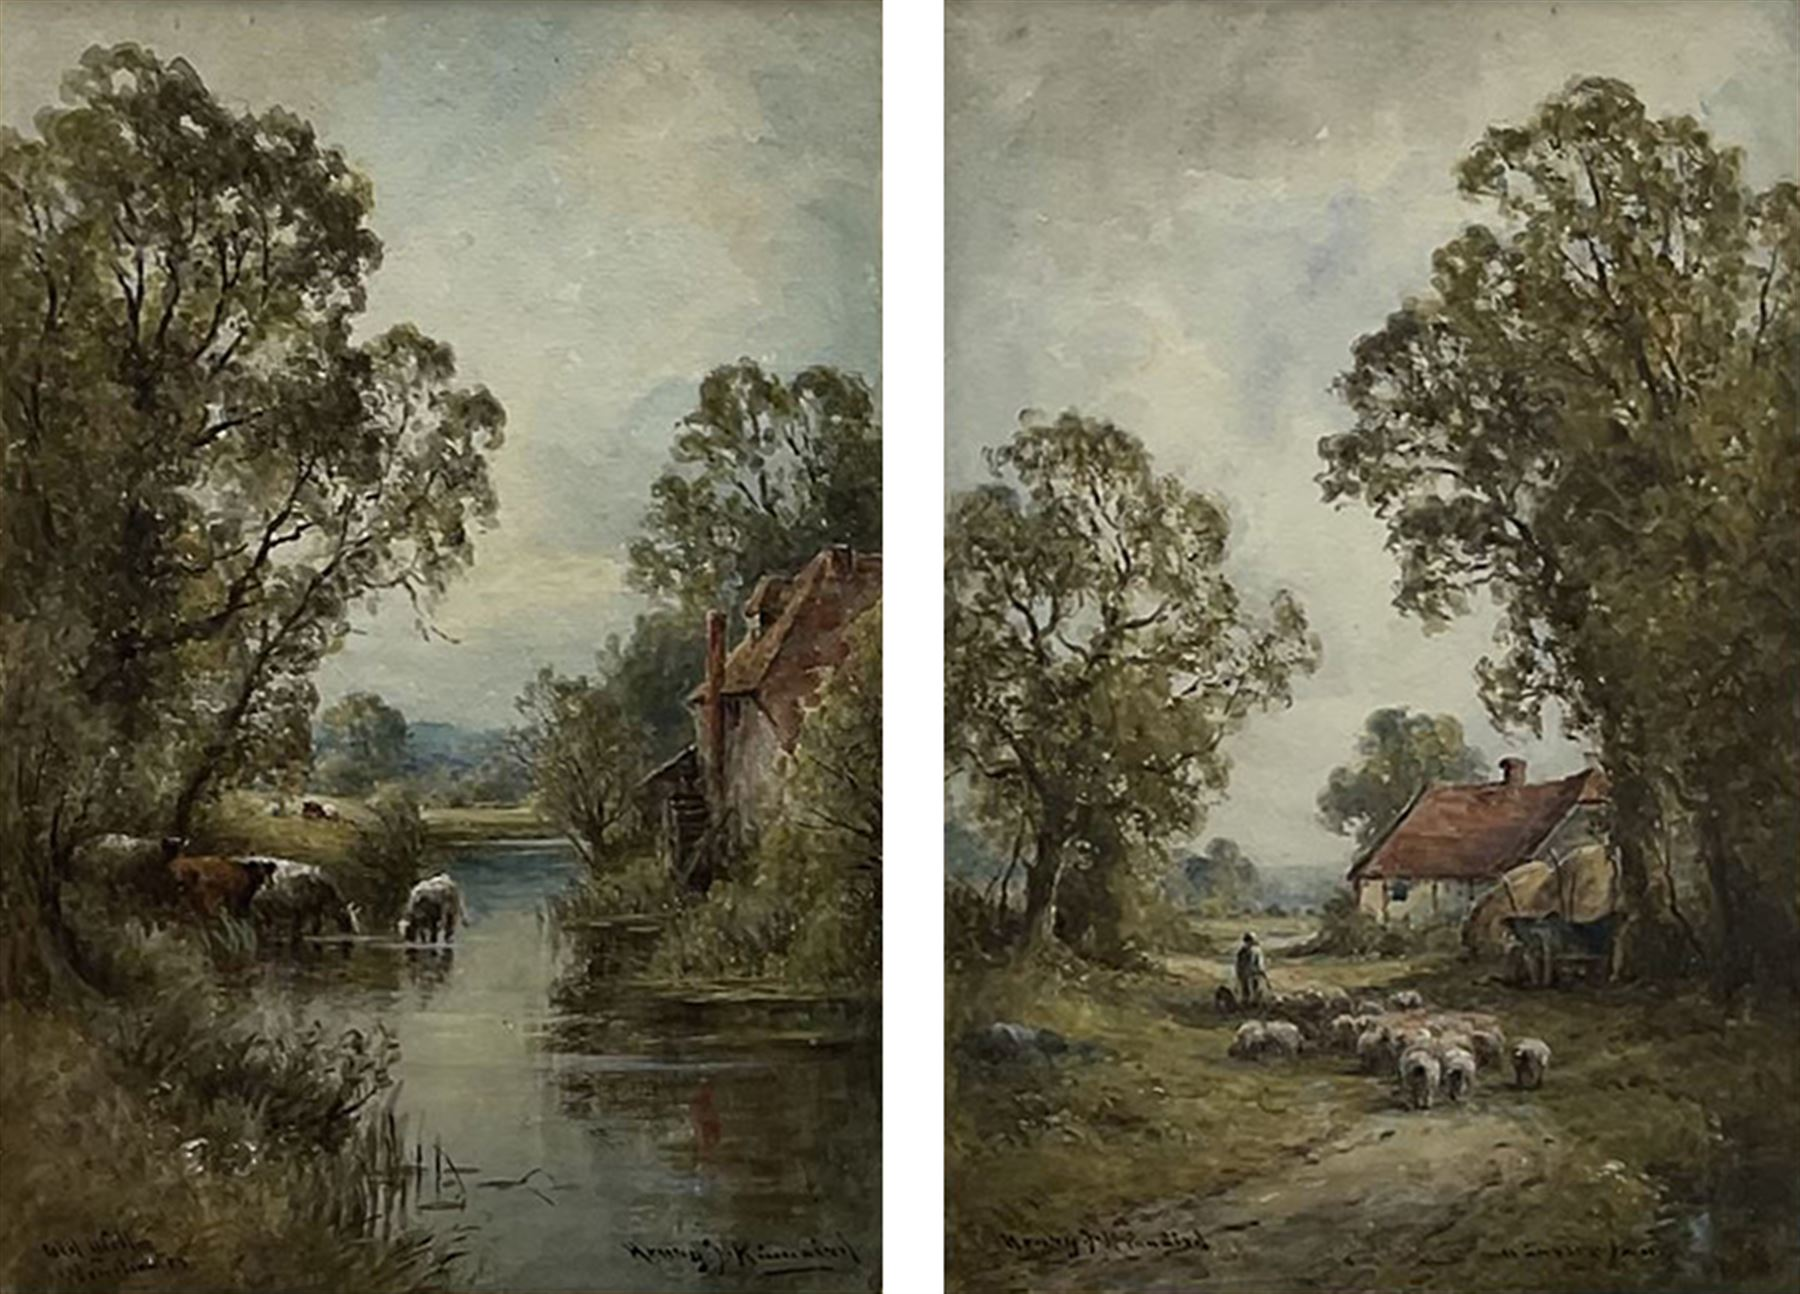 Henry J Kinnaird (British fl.1880-1920): 'Old Mill Winchester' and 'A Sussex Lane'